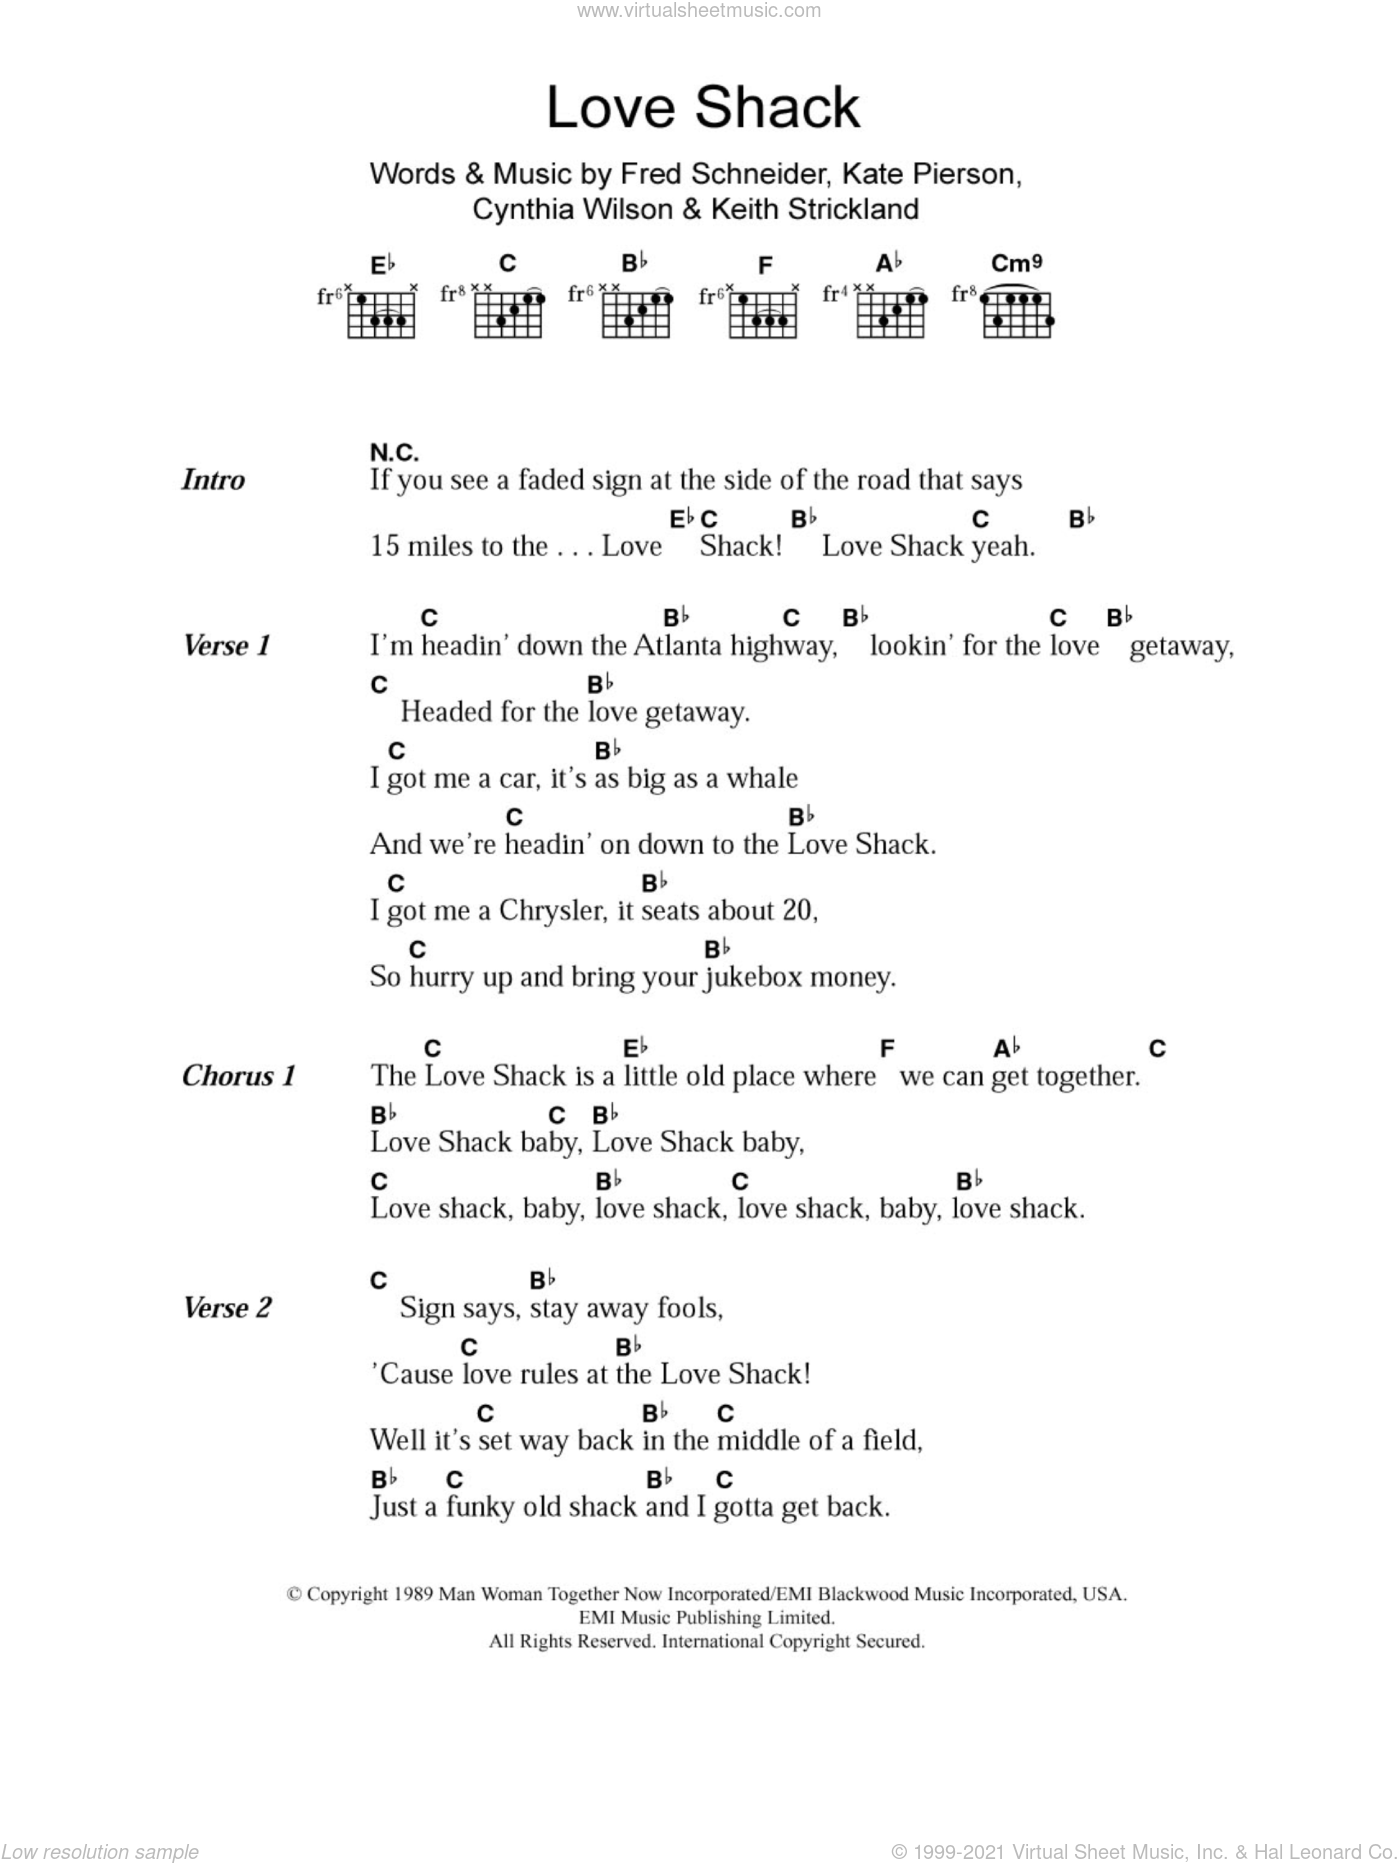 Love Shack sheet music for guitar (chords, lyrics, melody) by Keith Strickland